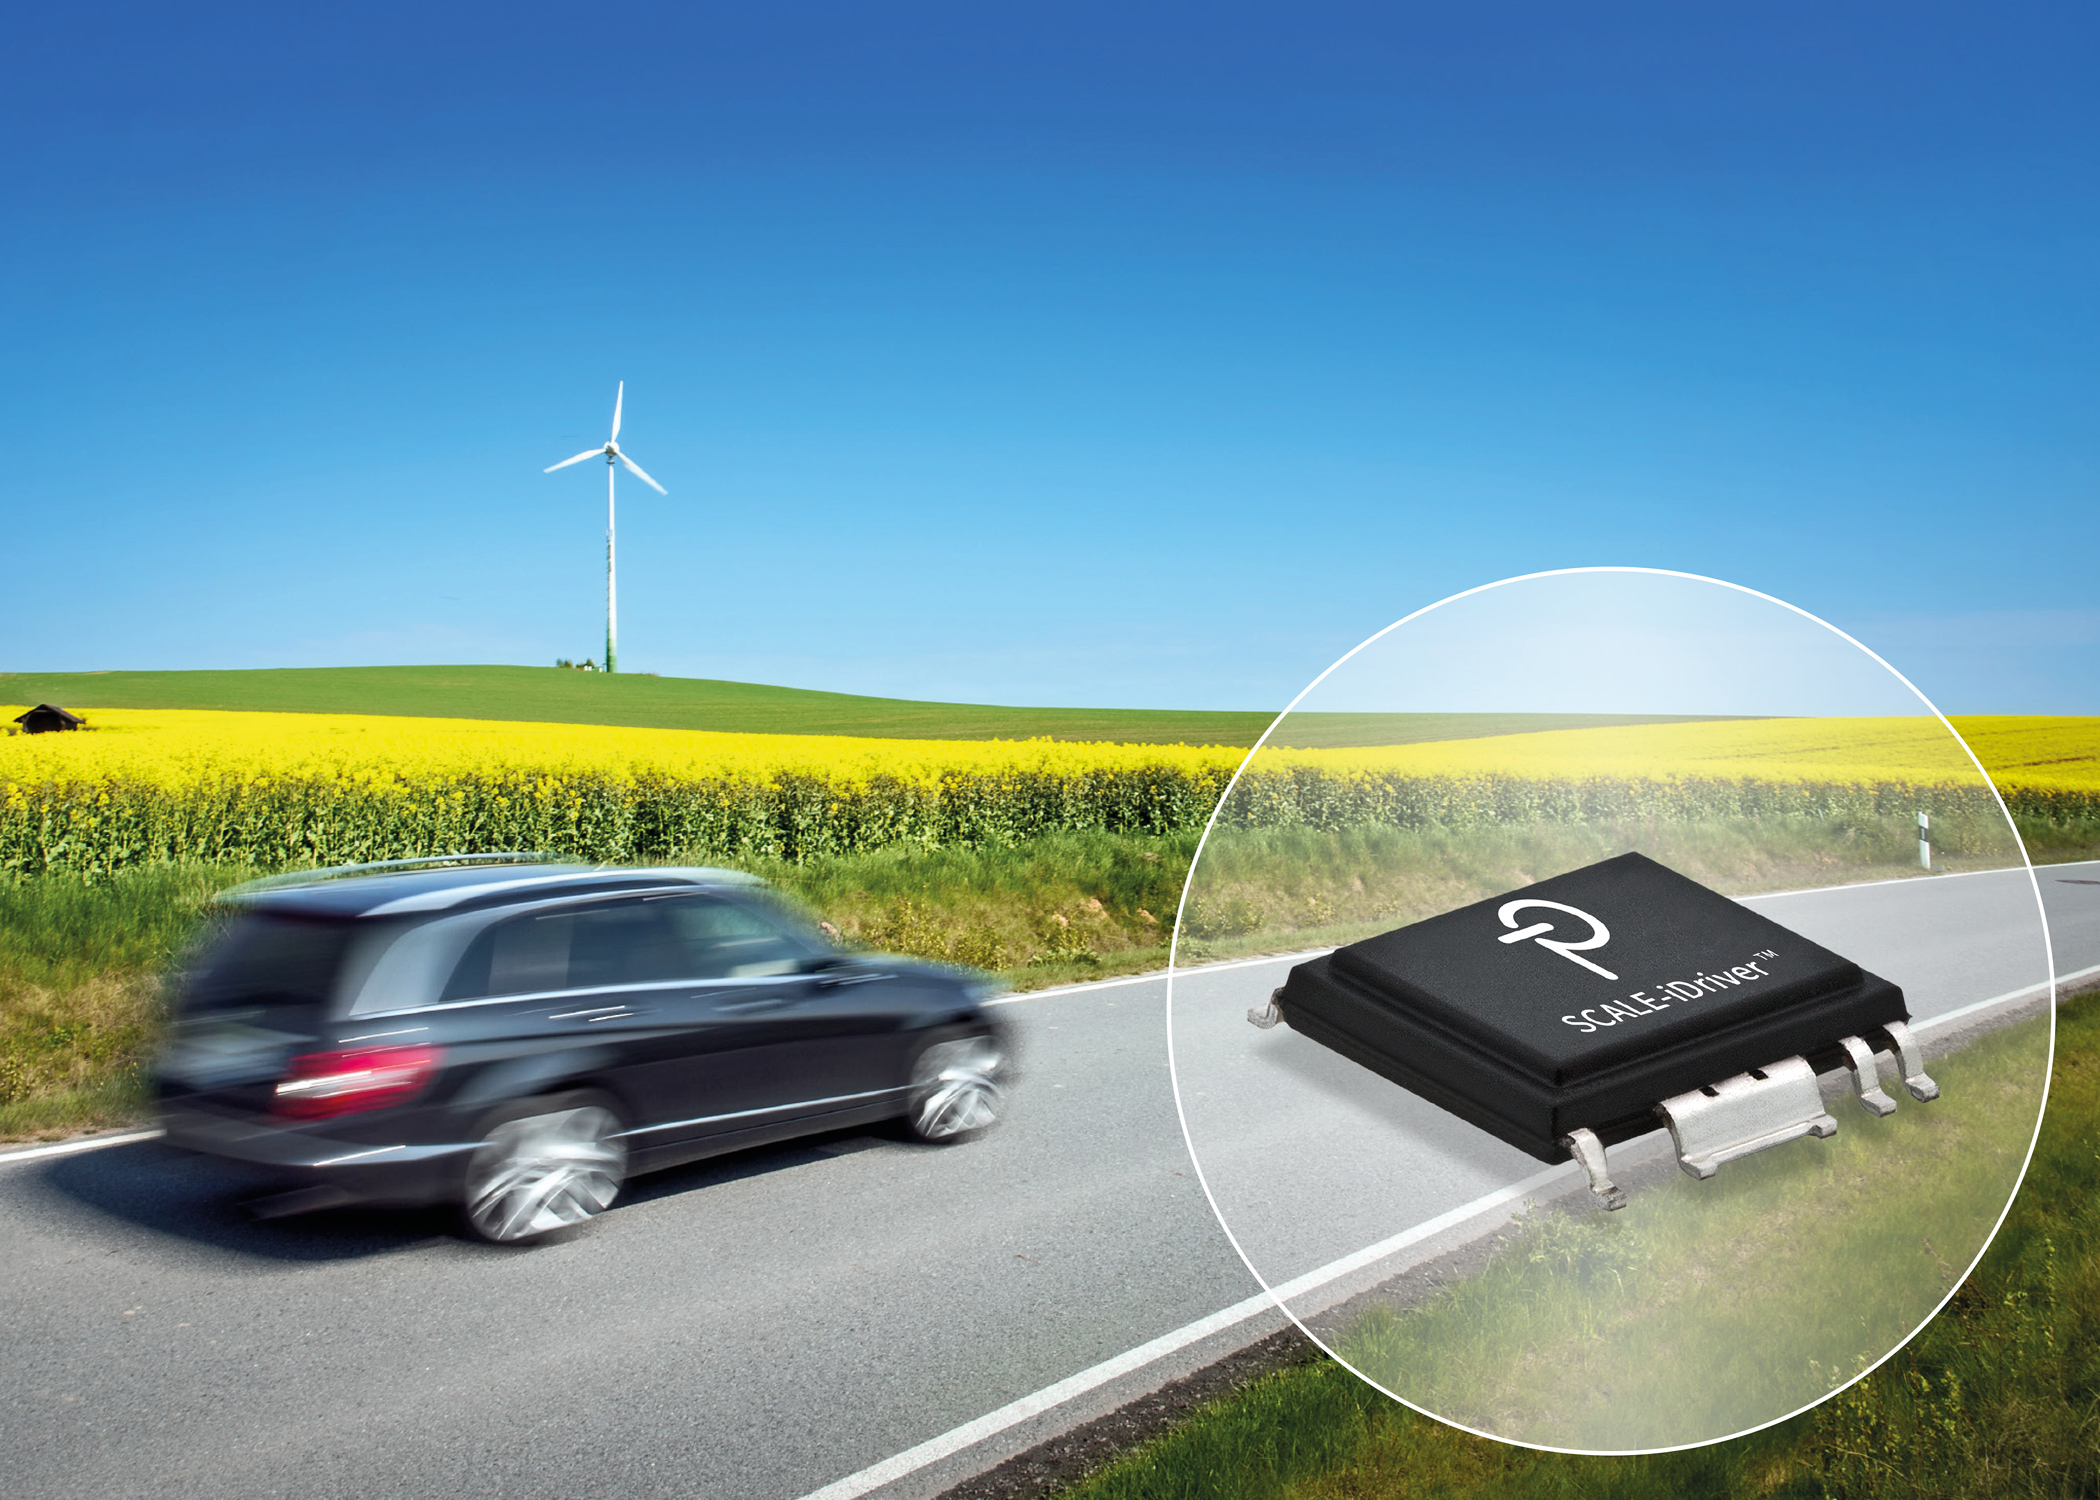 Gate-Driver ICs Now Available With AEC-Q100 Certification for Automotive Use